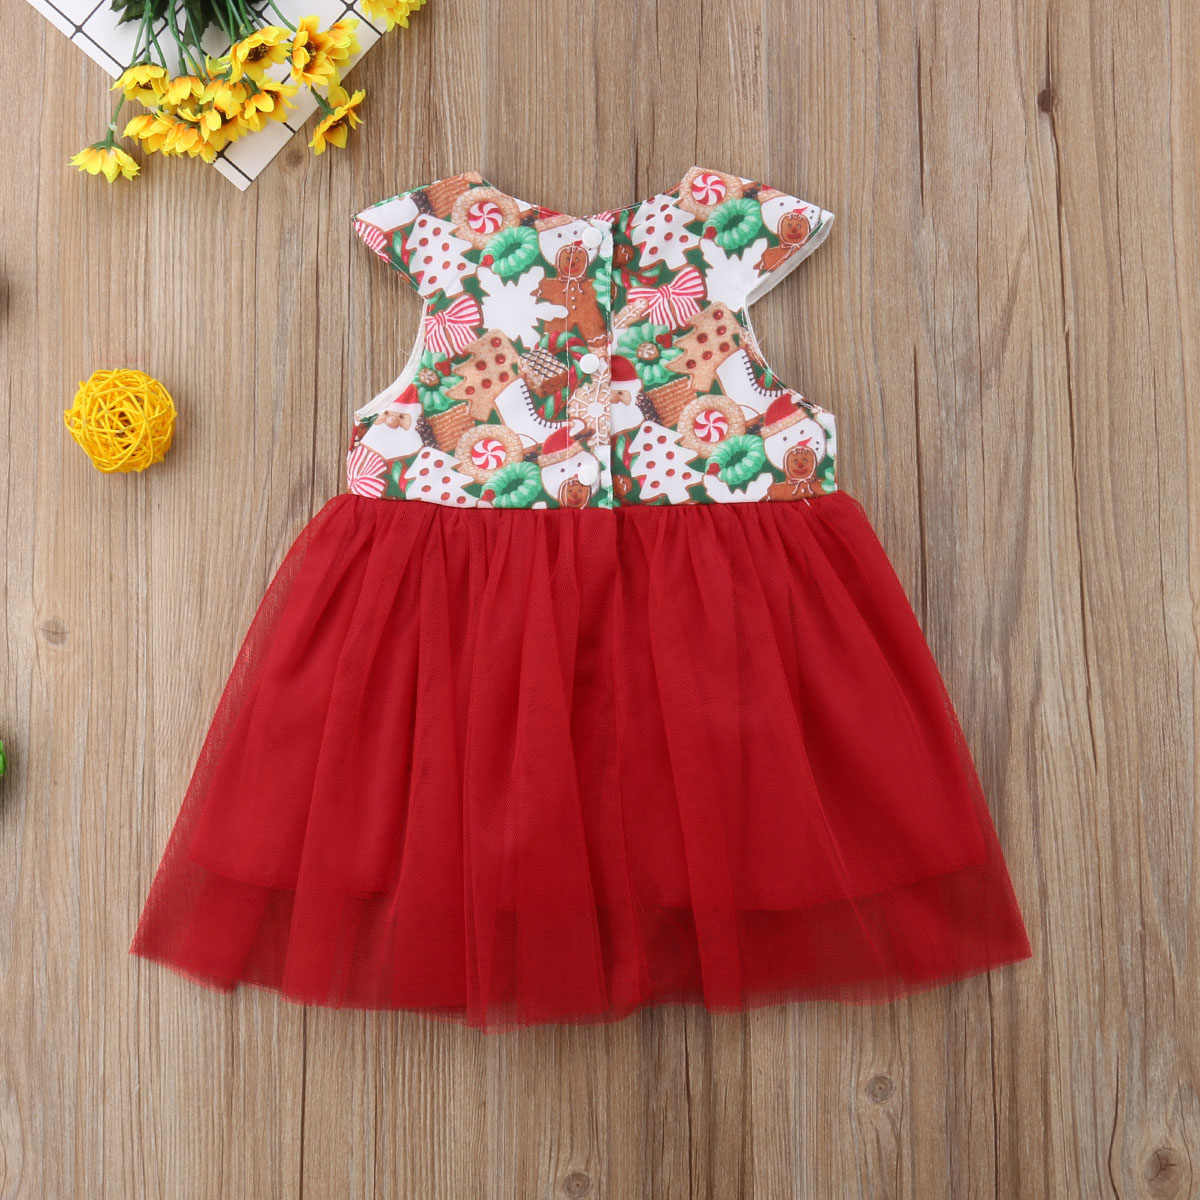 a2983b548c83b Christmas Newborn Toddler Baby Girl Sister Match Clothes Tutu Princess  Party Dress Romper Clothes Outfits